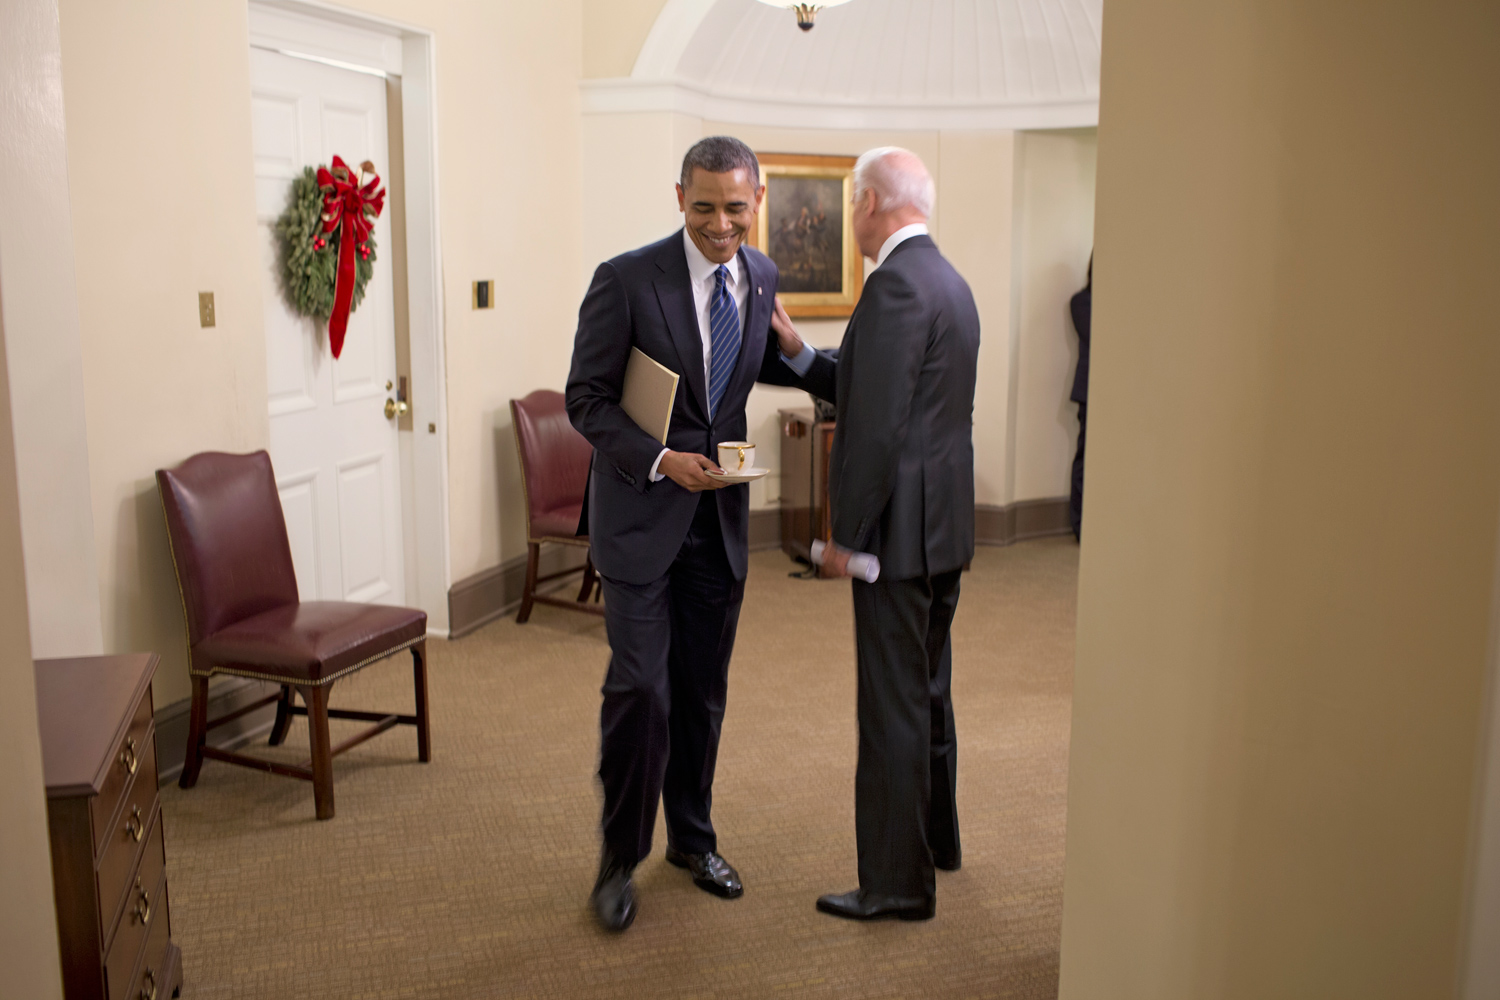 In the hallways outside the Roosevelt Room, Obama and Biden share a brief word following the policy meeting.